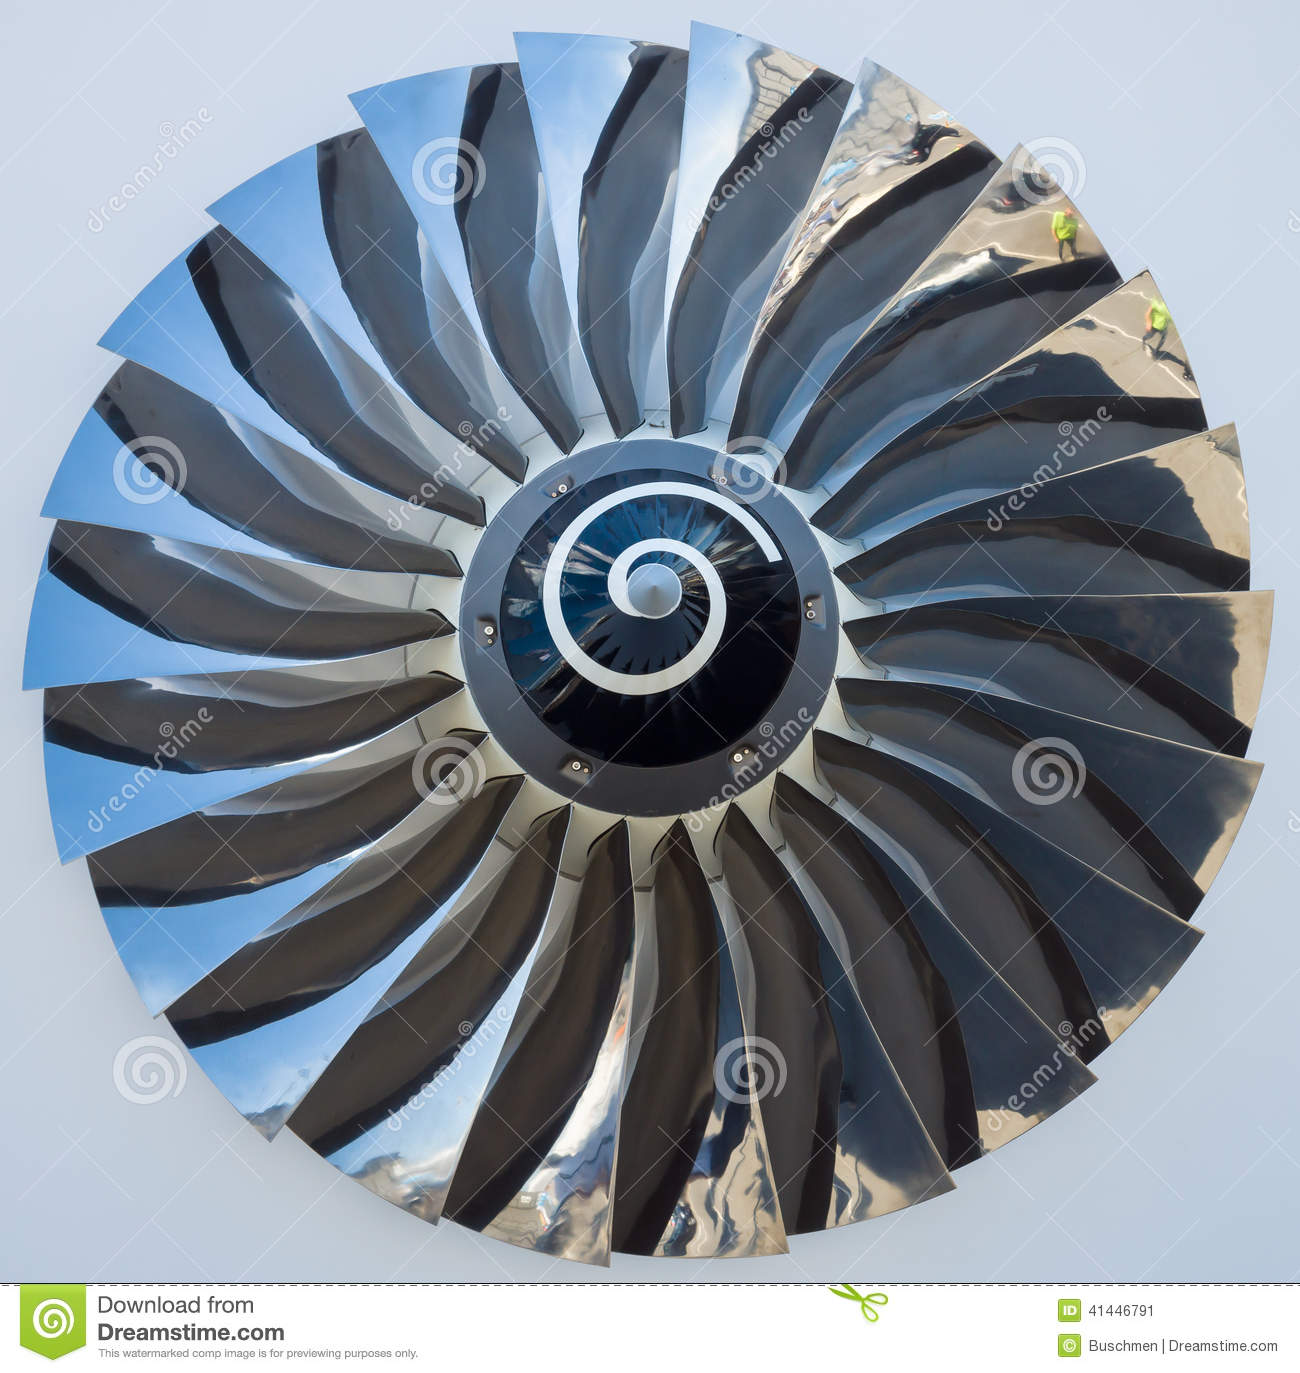 Jet Engine Fan Blades : The blades of a turbofan jet engine stock image